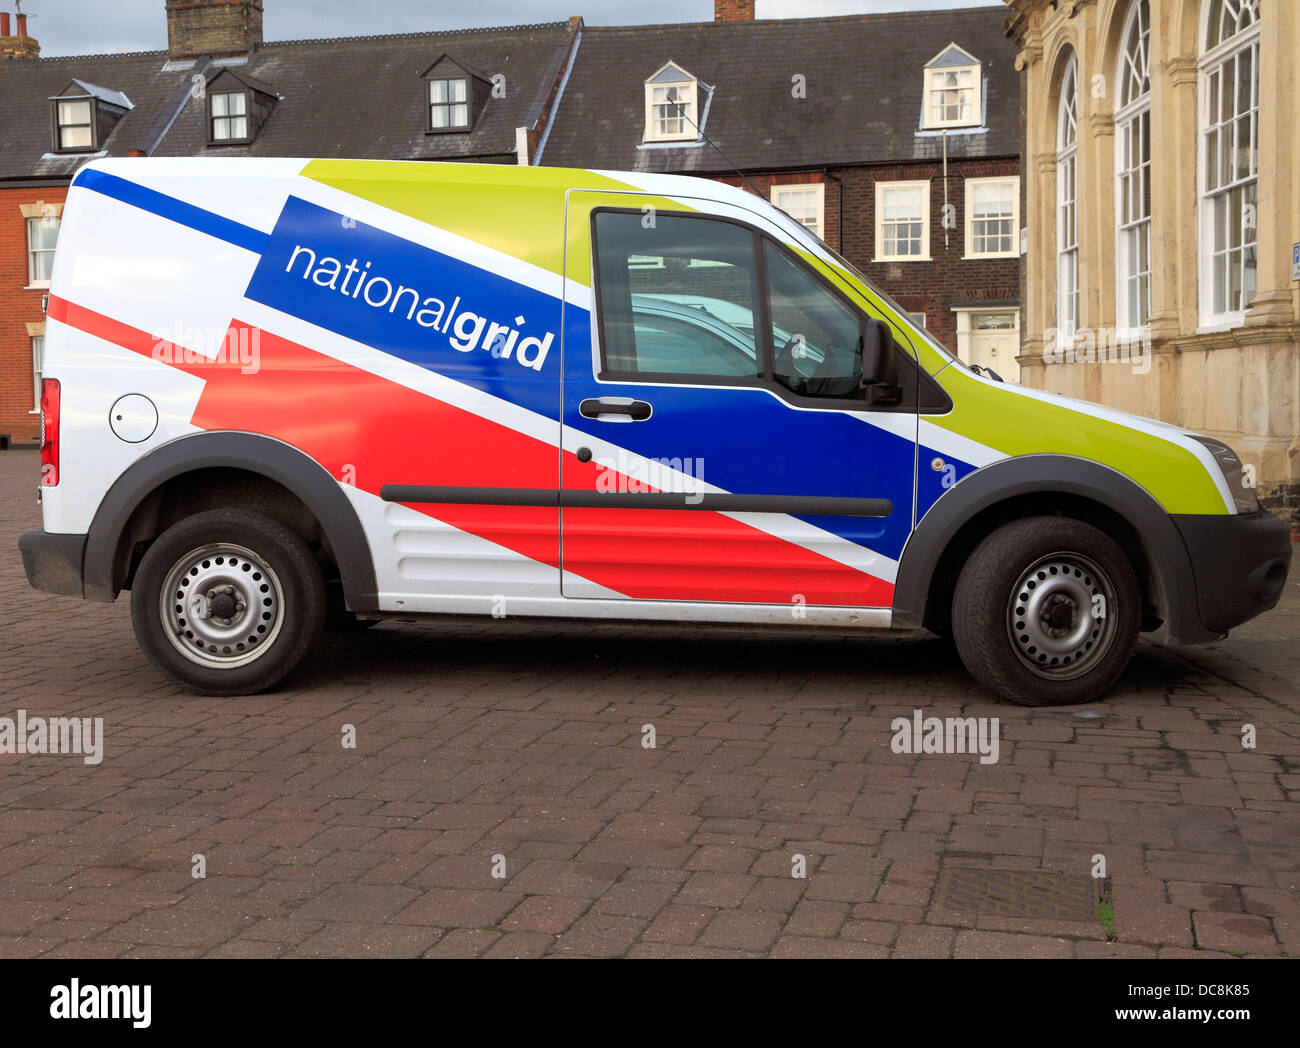 National Grid van vehicle, nationalgrid logo England UK vans vehicles - Stock Image